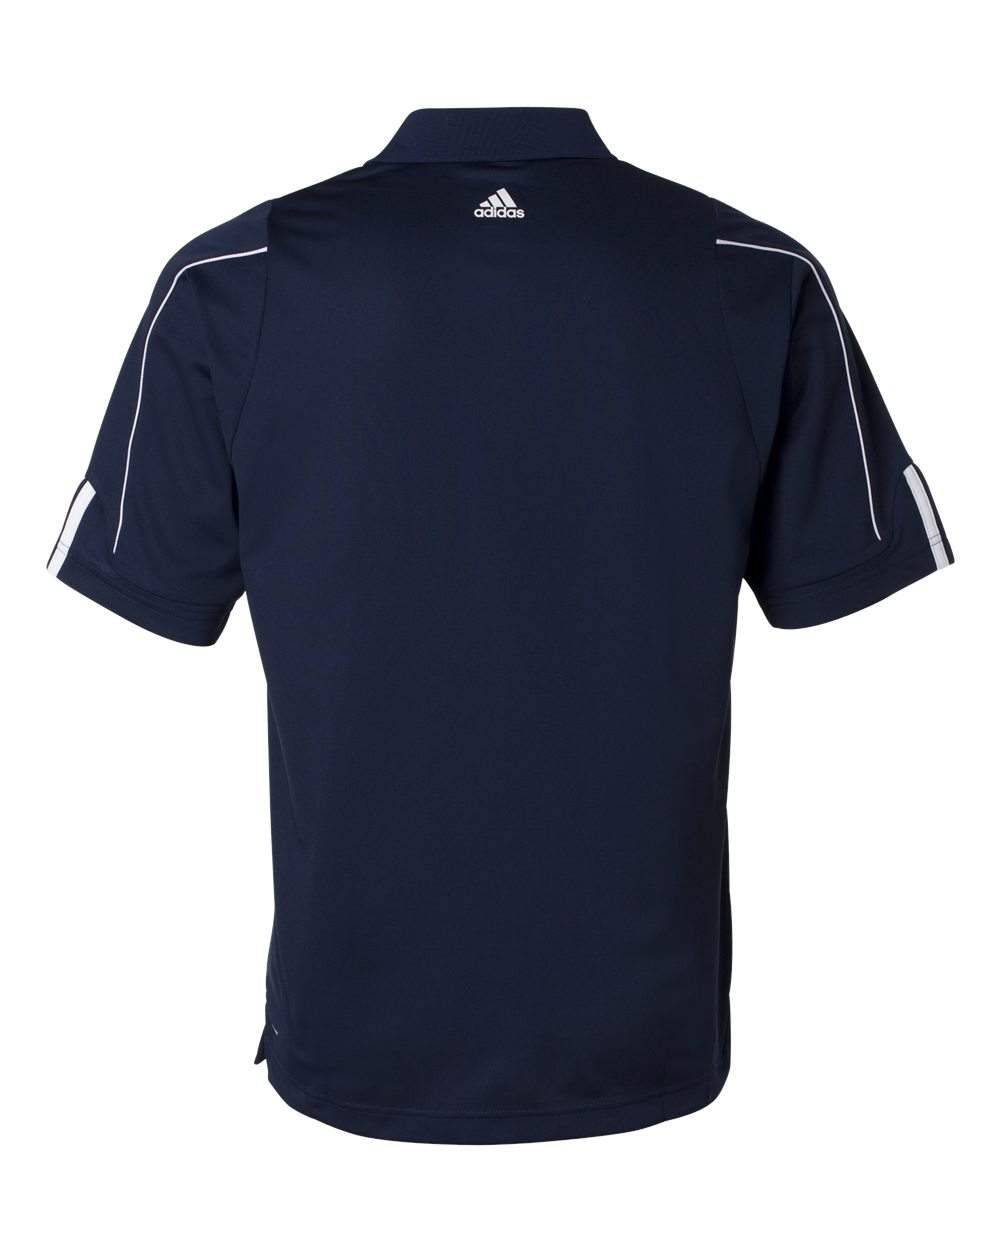 Adidas-Mens-Climalite-3-Stripes-Cuff-Sport-Shirt-A76-up-to-4XL miniature 16